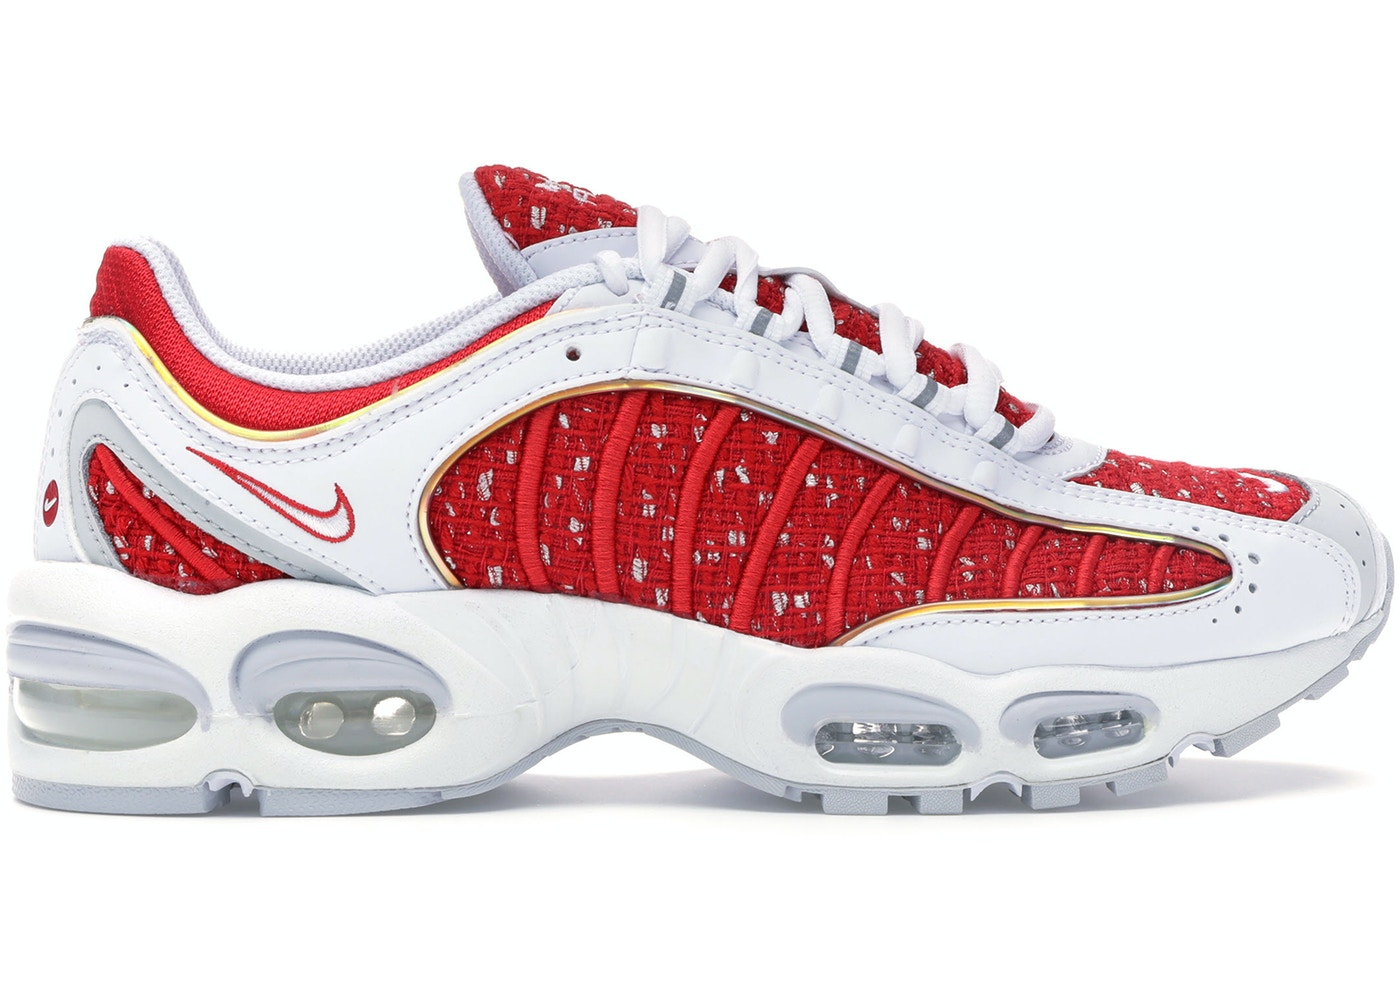 0d23f1db Buy Nike Air Max Other Shoes & Deadstock Sneakers